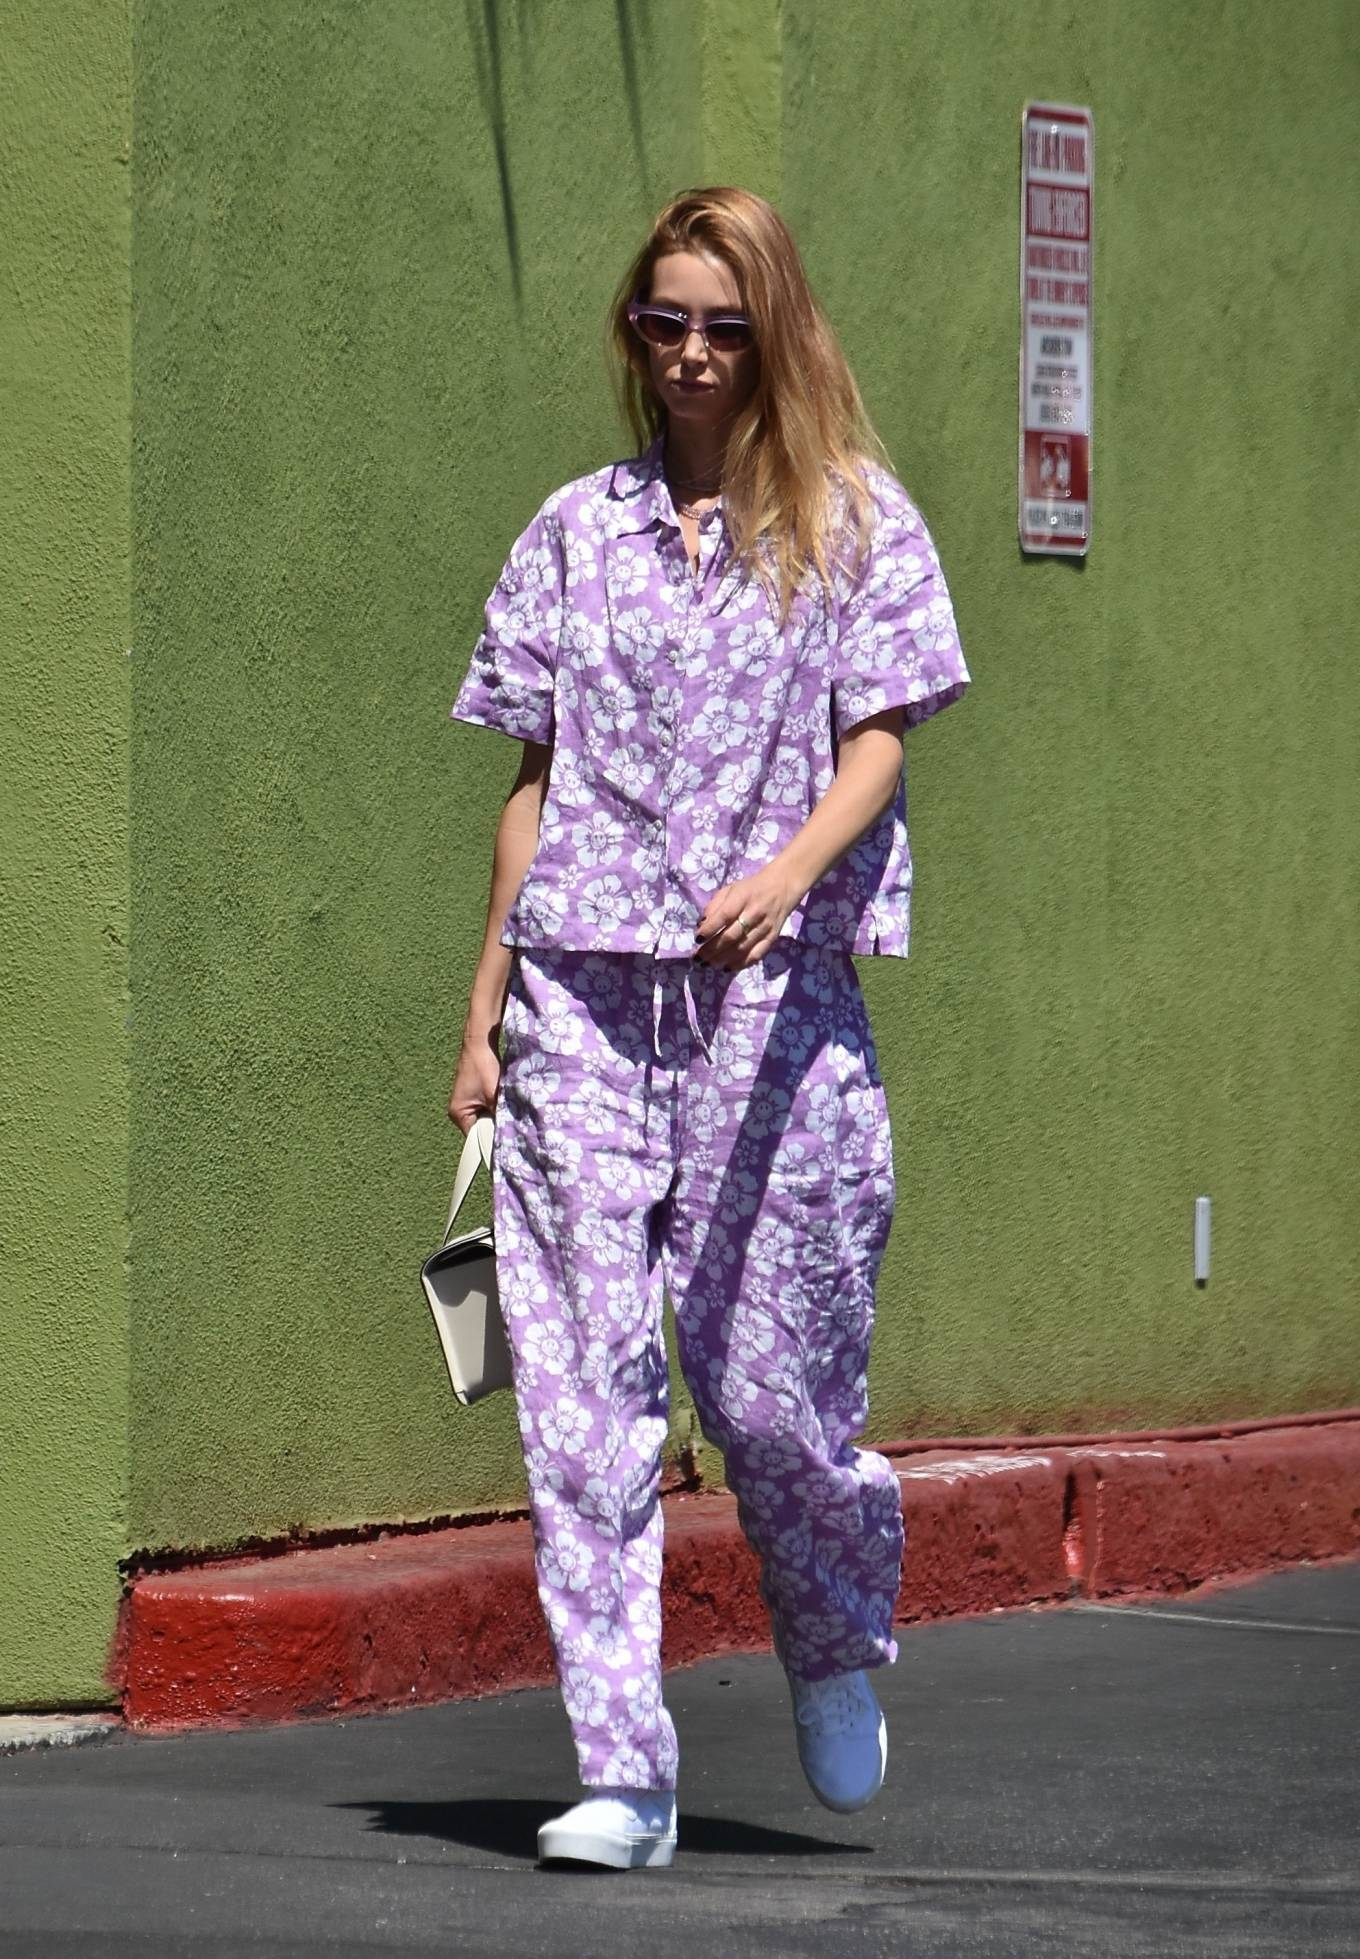 Whitney Port - wearing a lavender floral print outfit and matching sunglasses